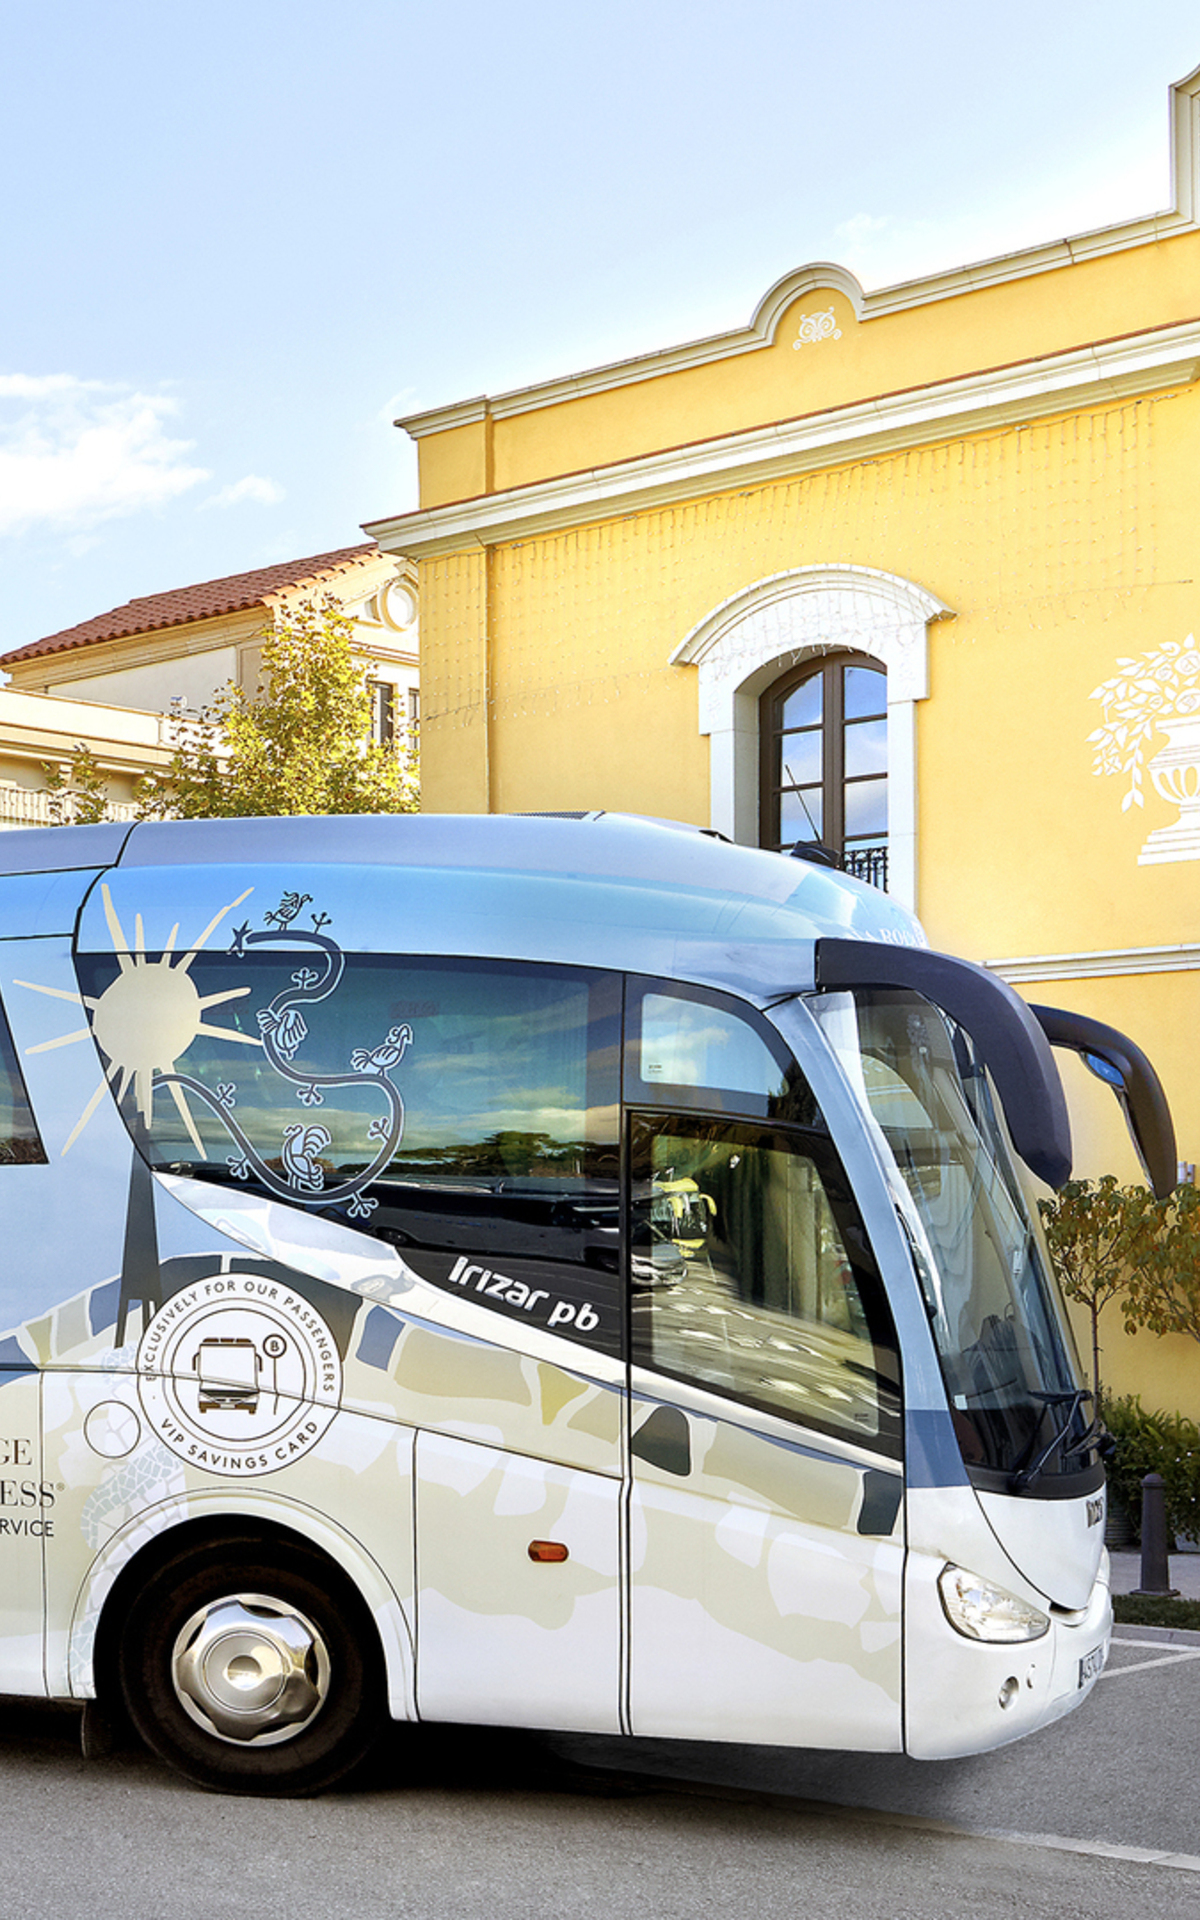 Shopping Express coach La Roca Village